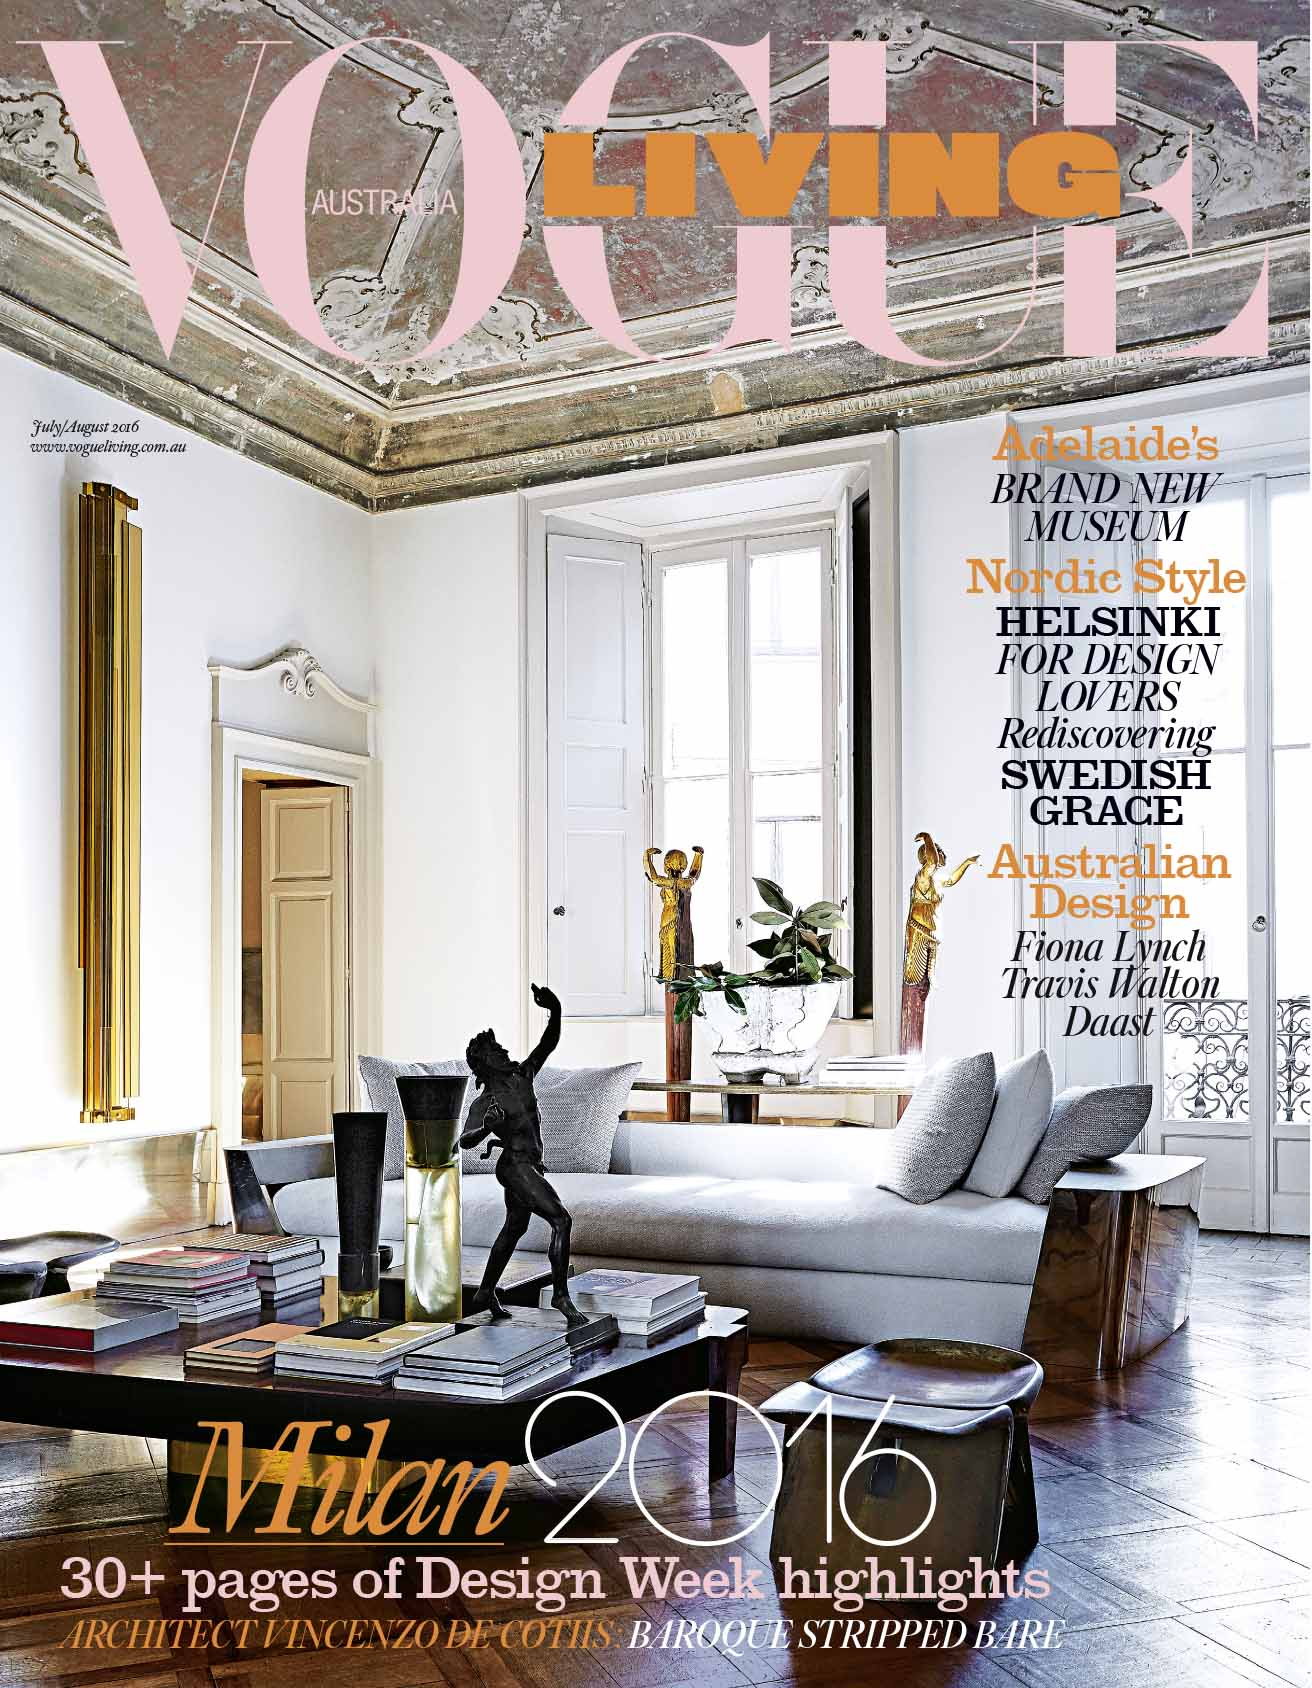 Vogue Living studio Oliver gustav